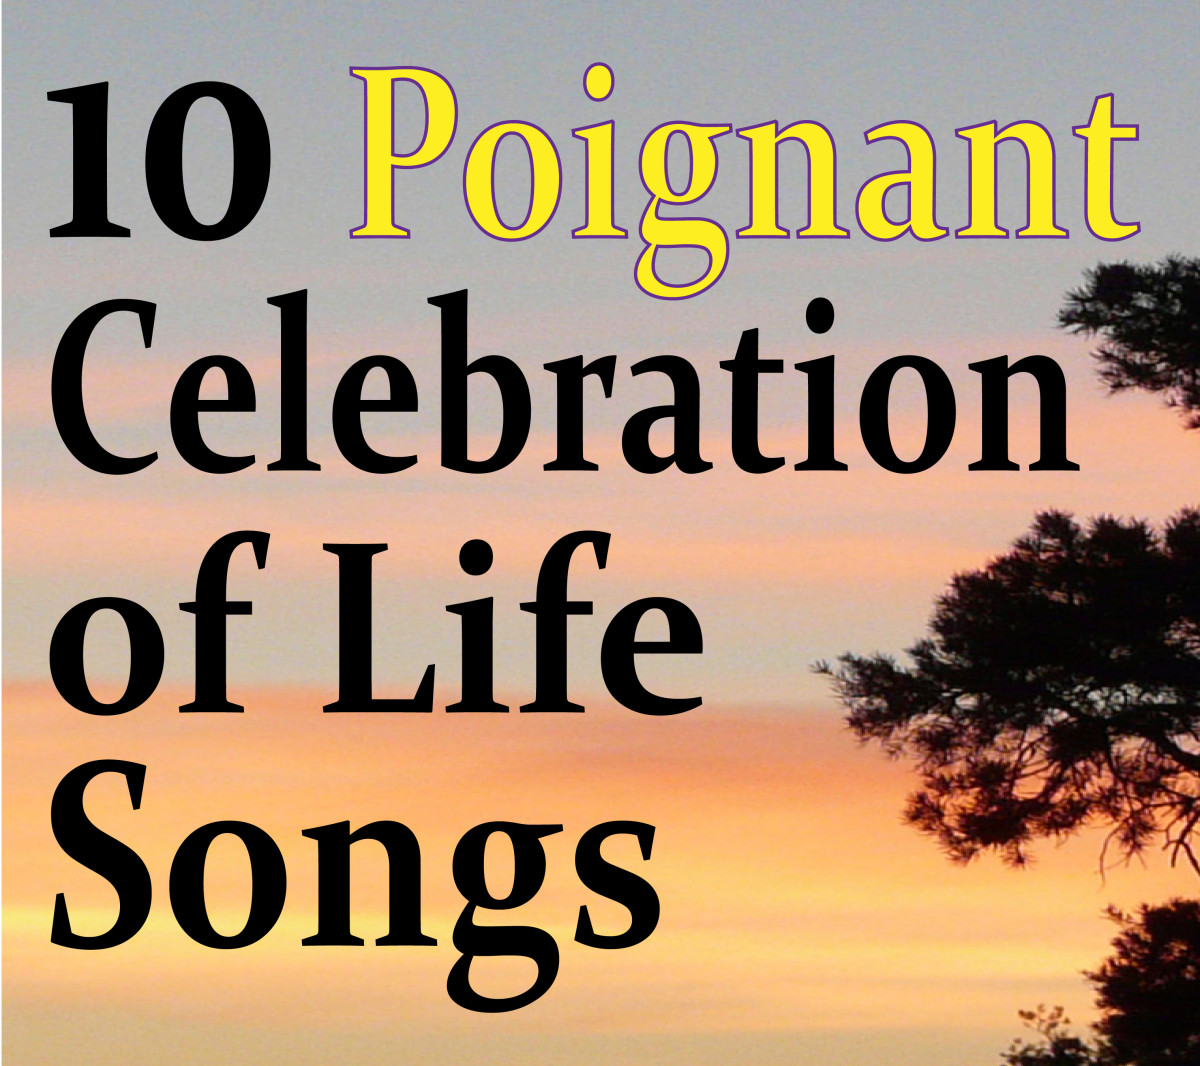 10 Poignant Celebration of Life Songs